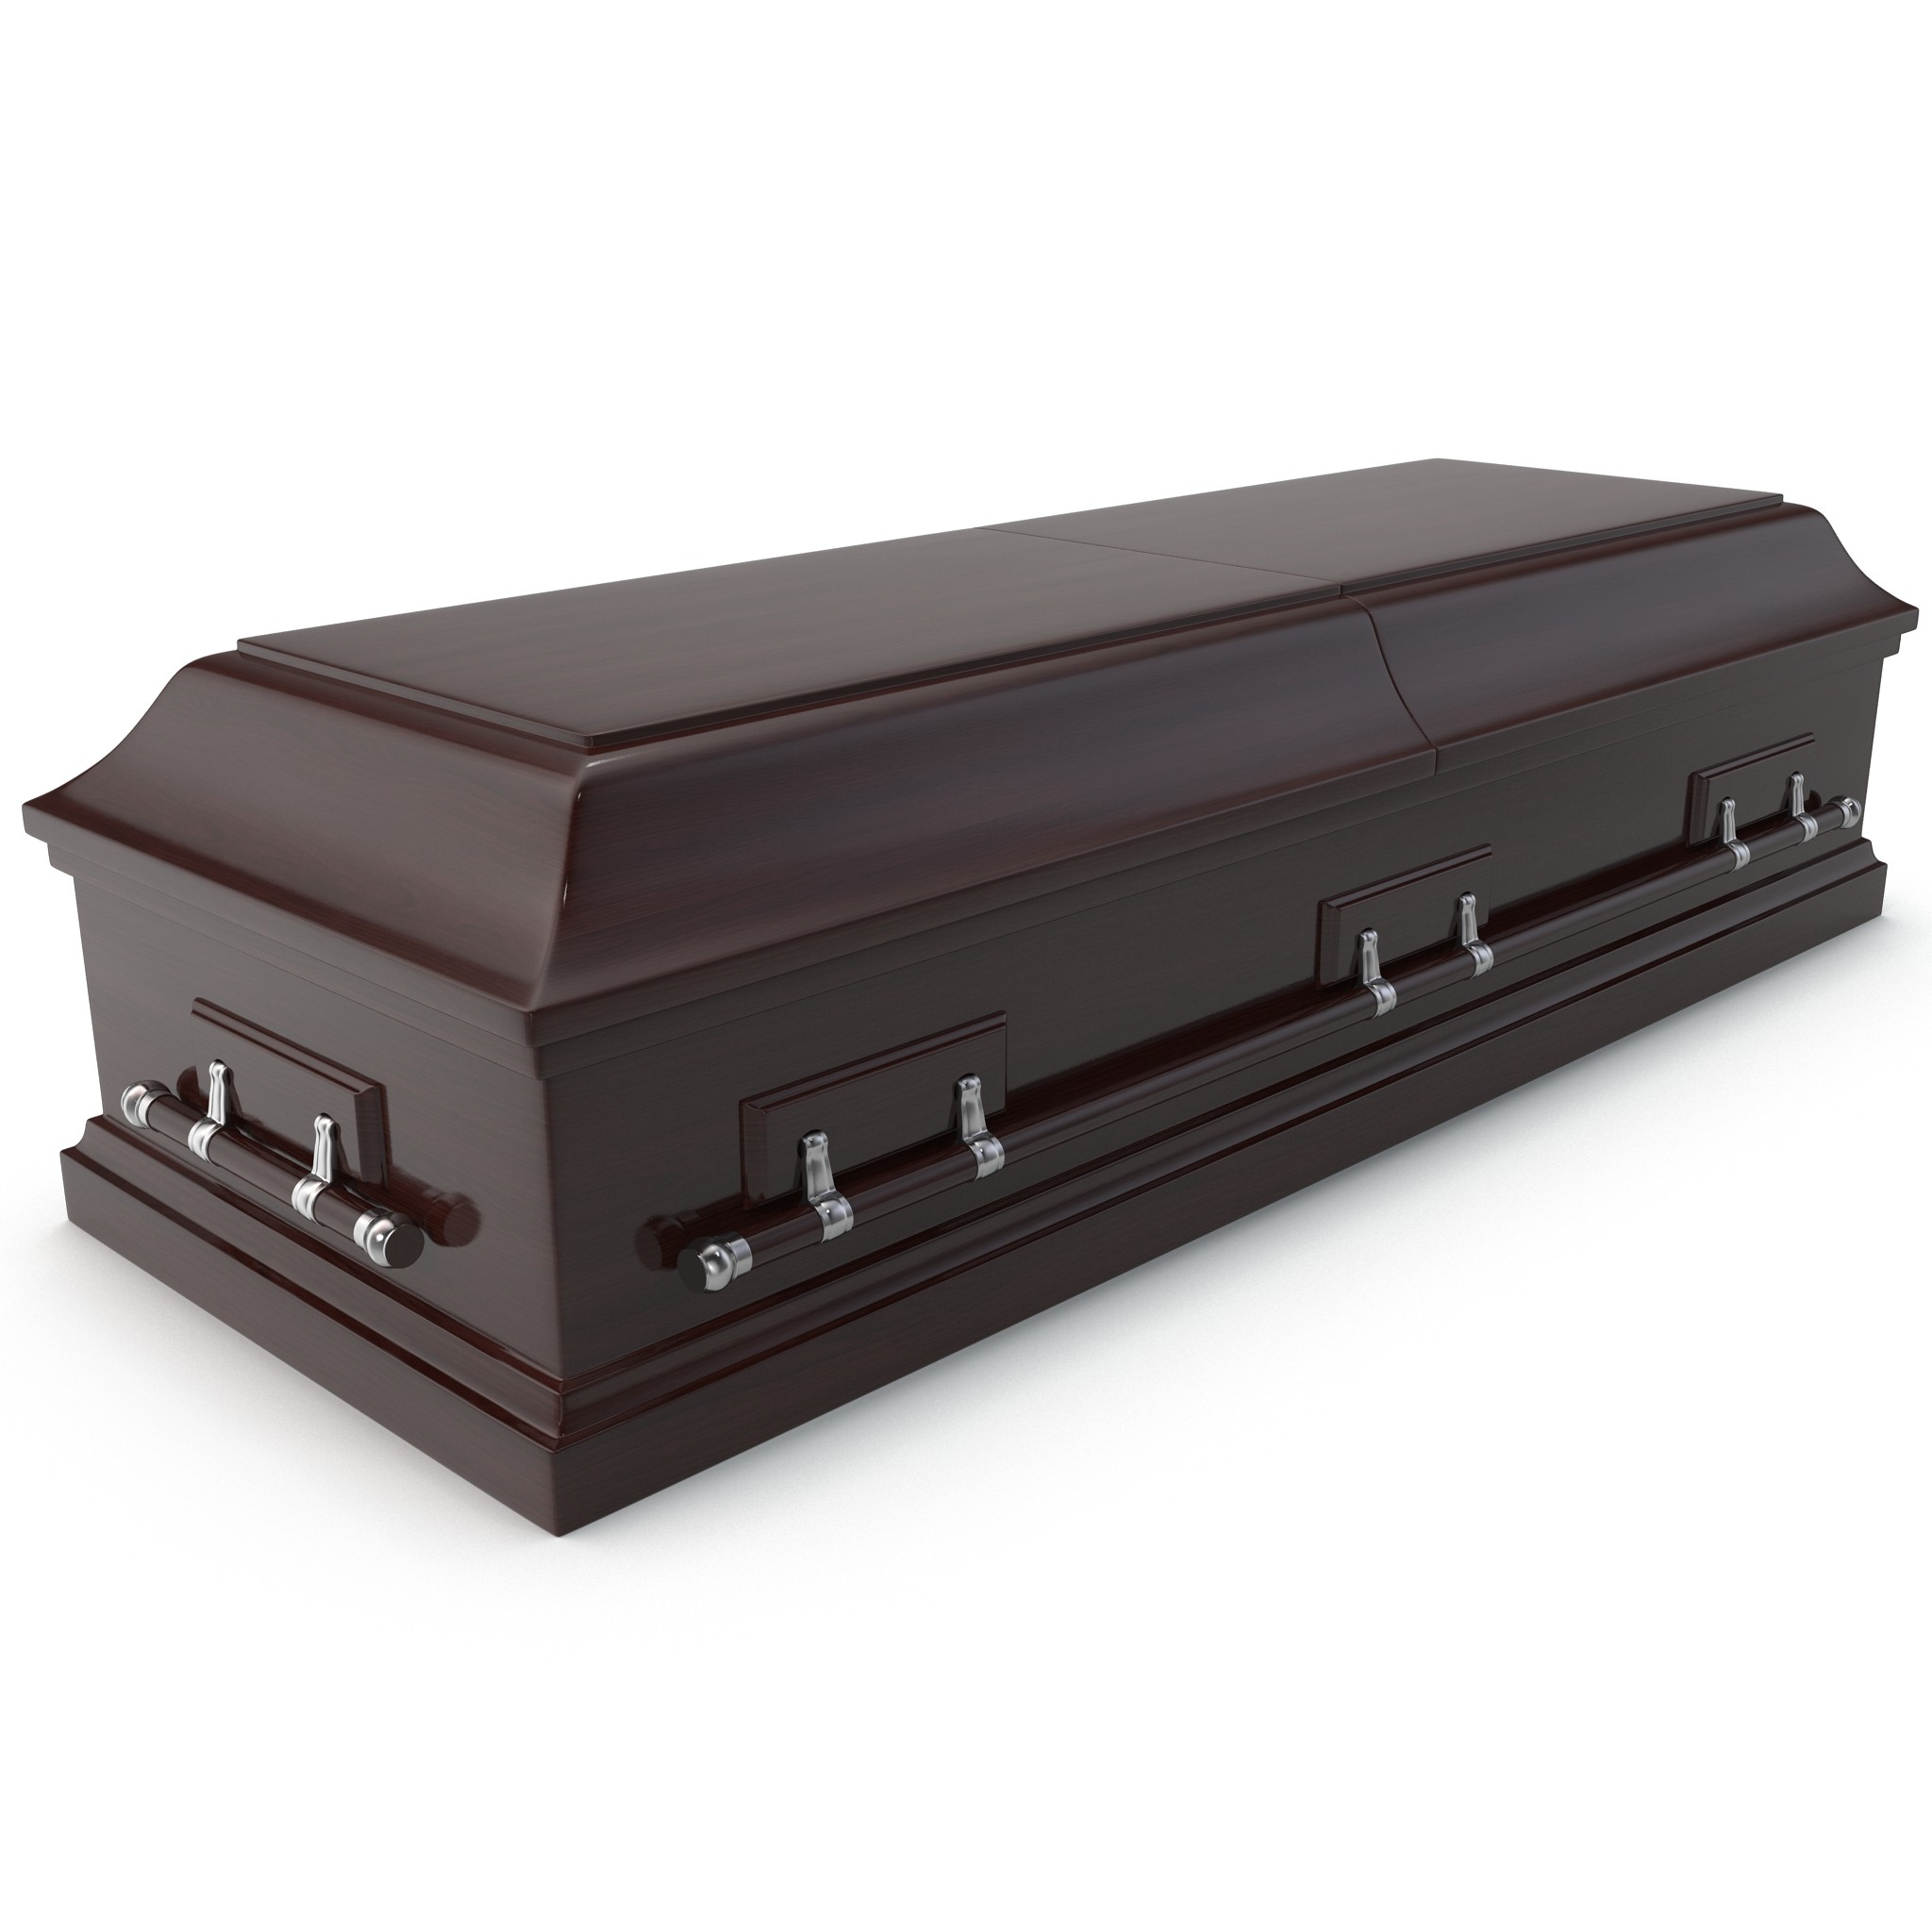 3d coffin clipart image freeuse stock coffin 2 3d model - Clip Art Library image freeuse stock